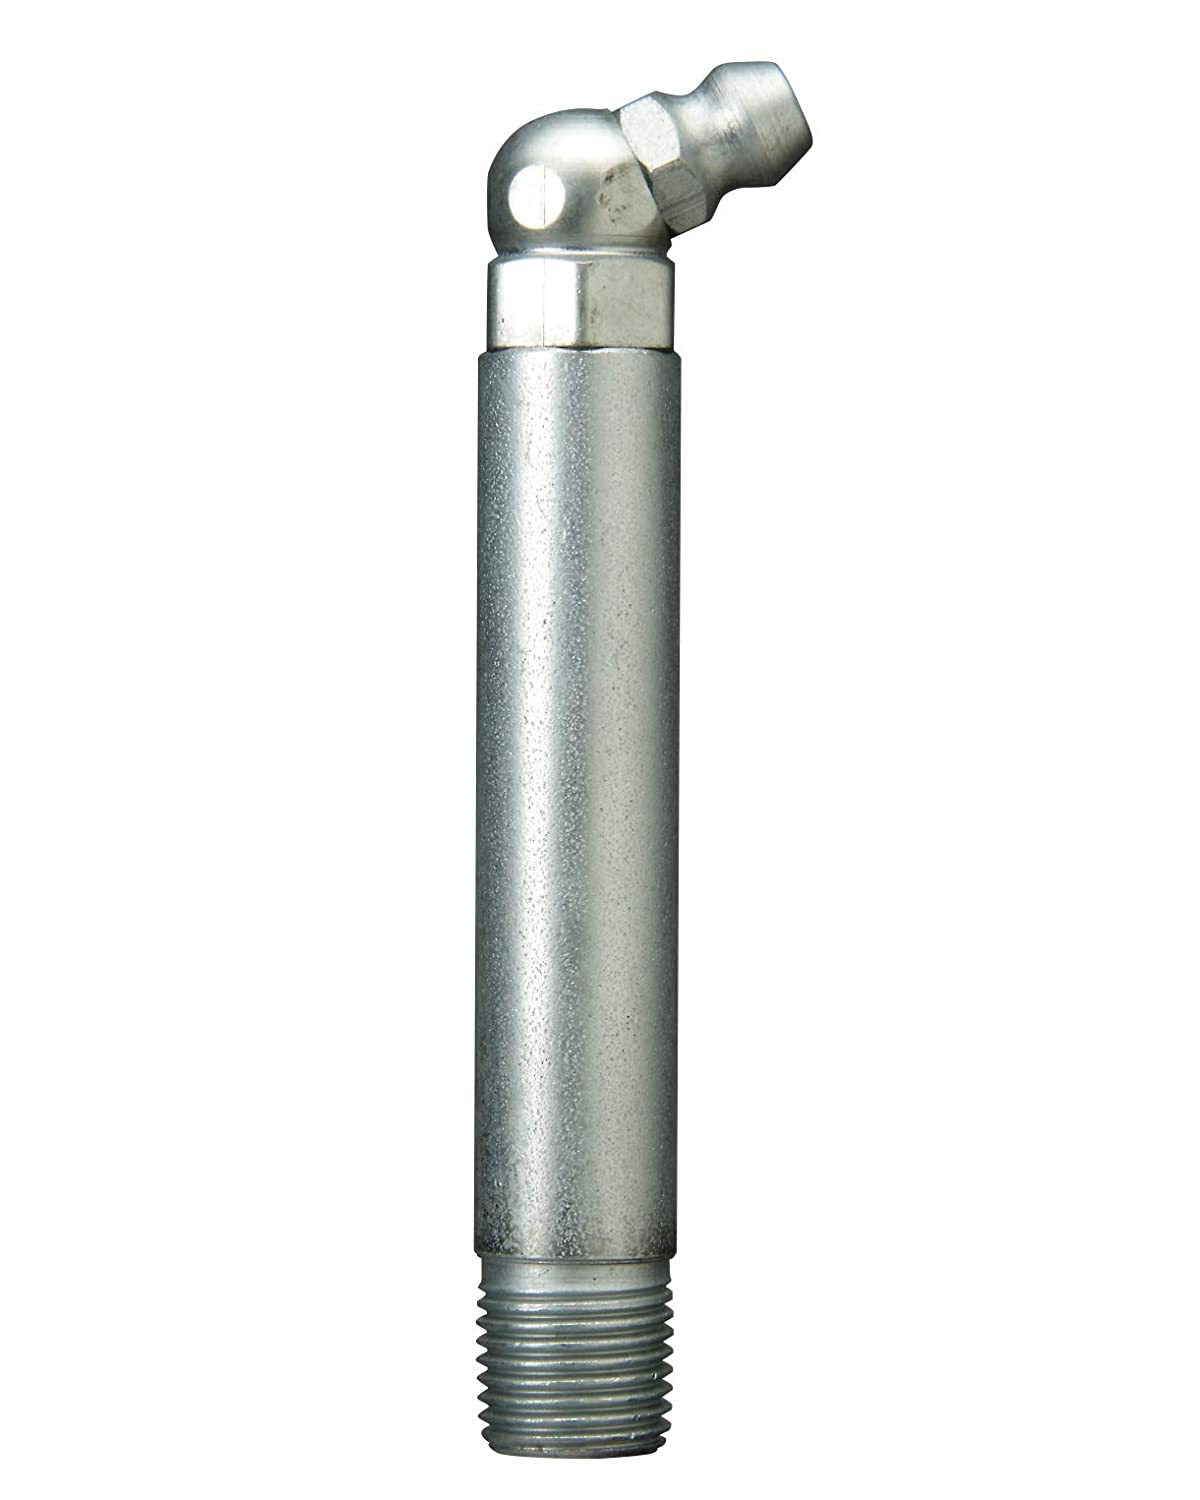 Alemite 1649-B Hydraulic Loose Fitting, 65 Degree Type, OAL 2-3/4', Shank Length 2-1/4', Hex Size 3/8', 1/8' PTF OAL 2-3/4 Shank Length 2-1/4 Hex Size 3/8 1/8 PTF